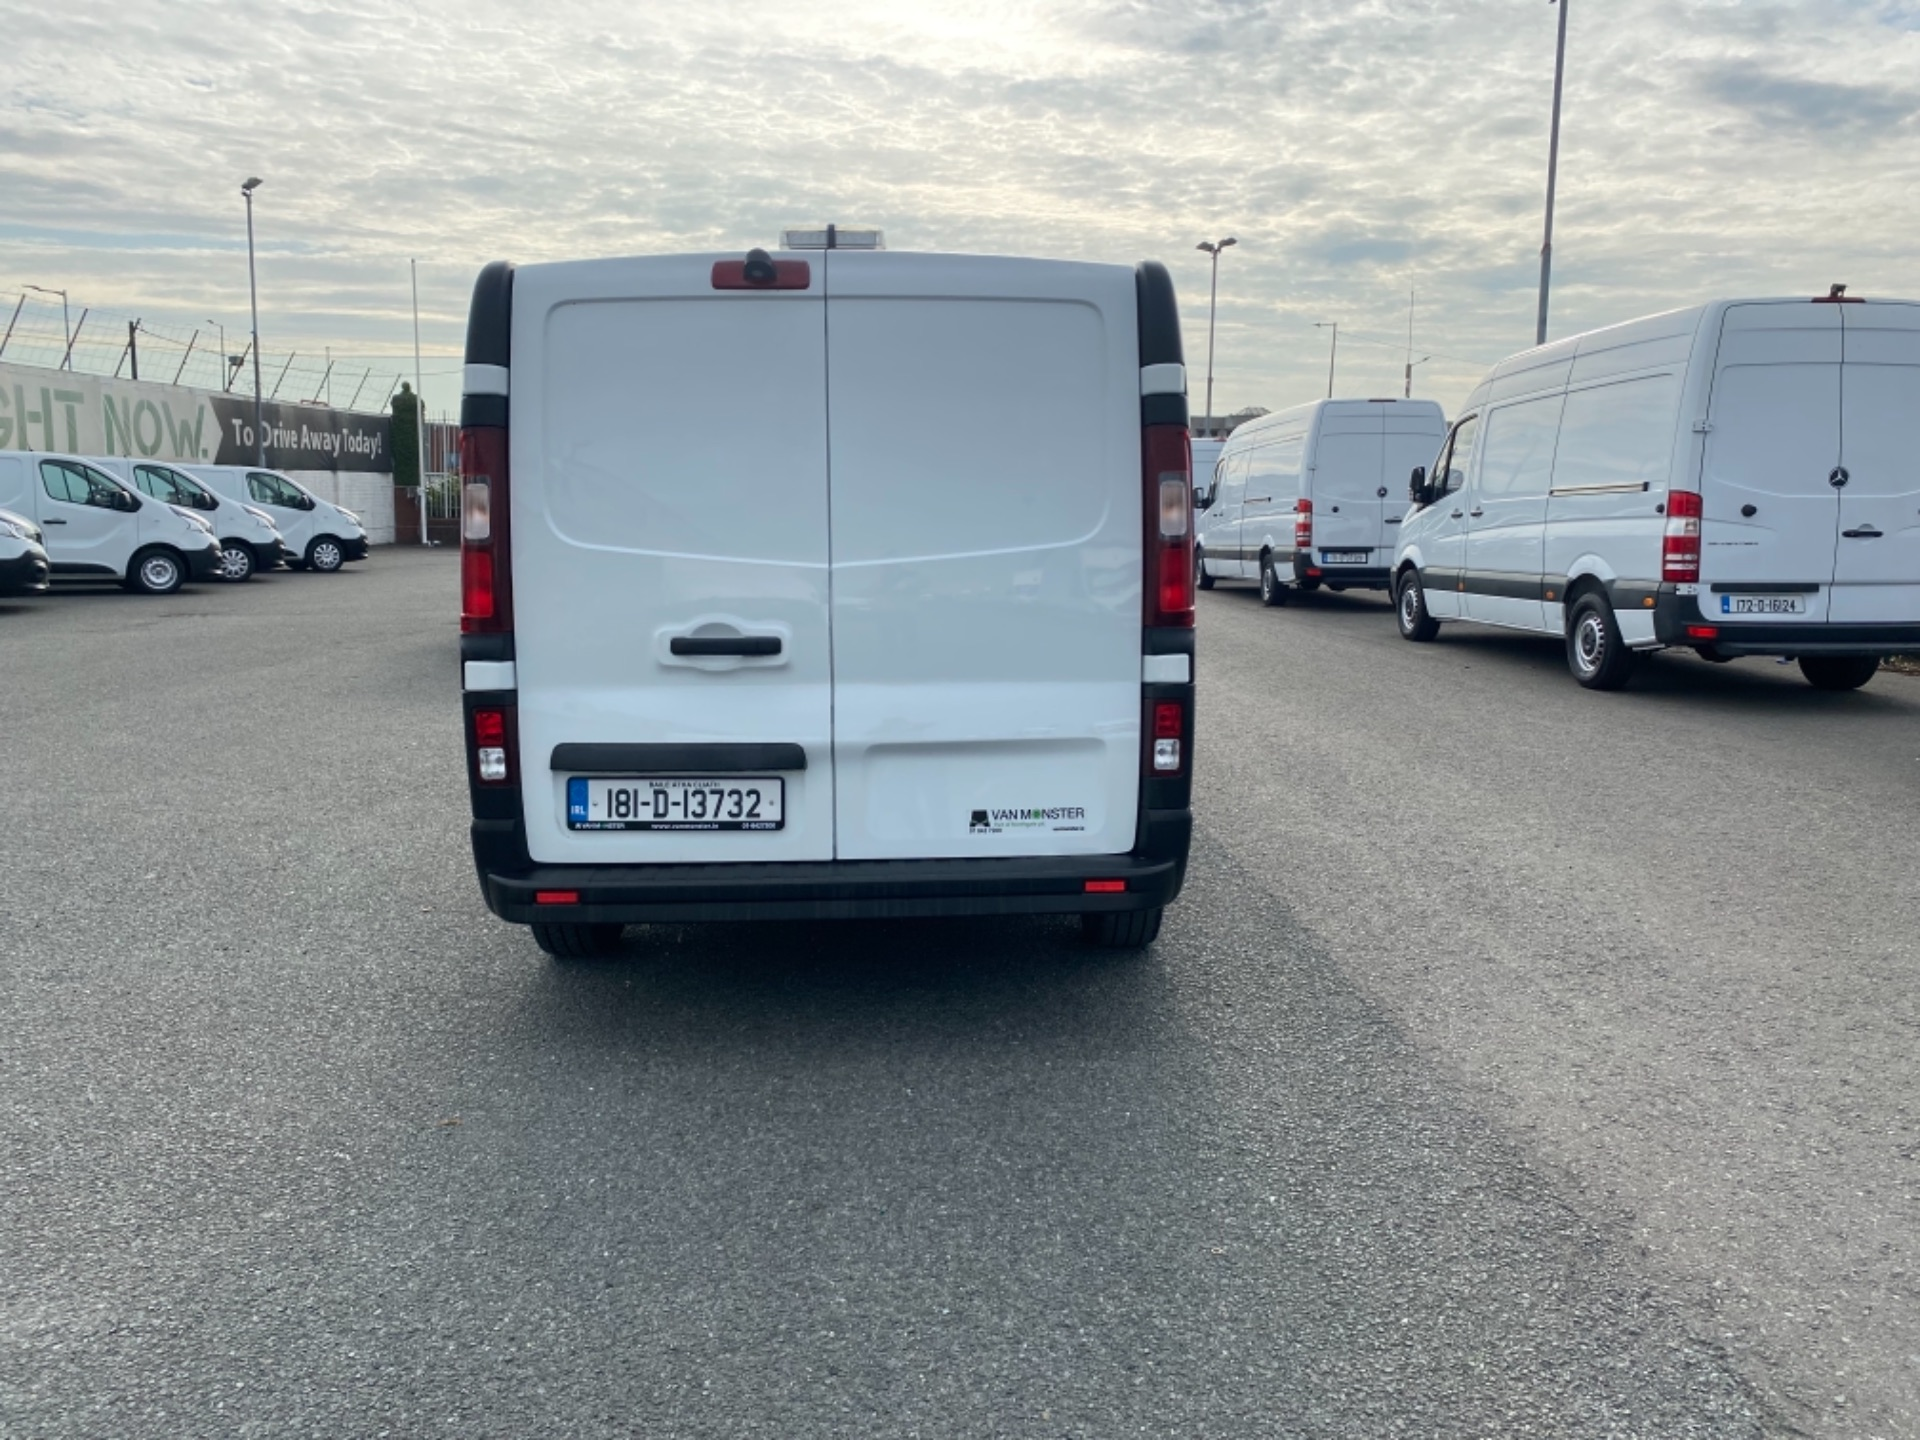 2018 Renault Trafic LL29 DCI 120 Business 3DR (181D13732) Image 6